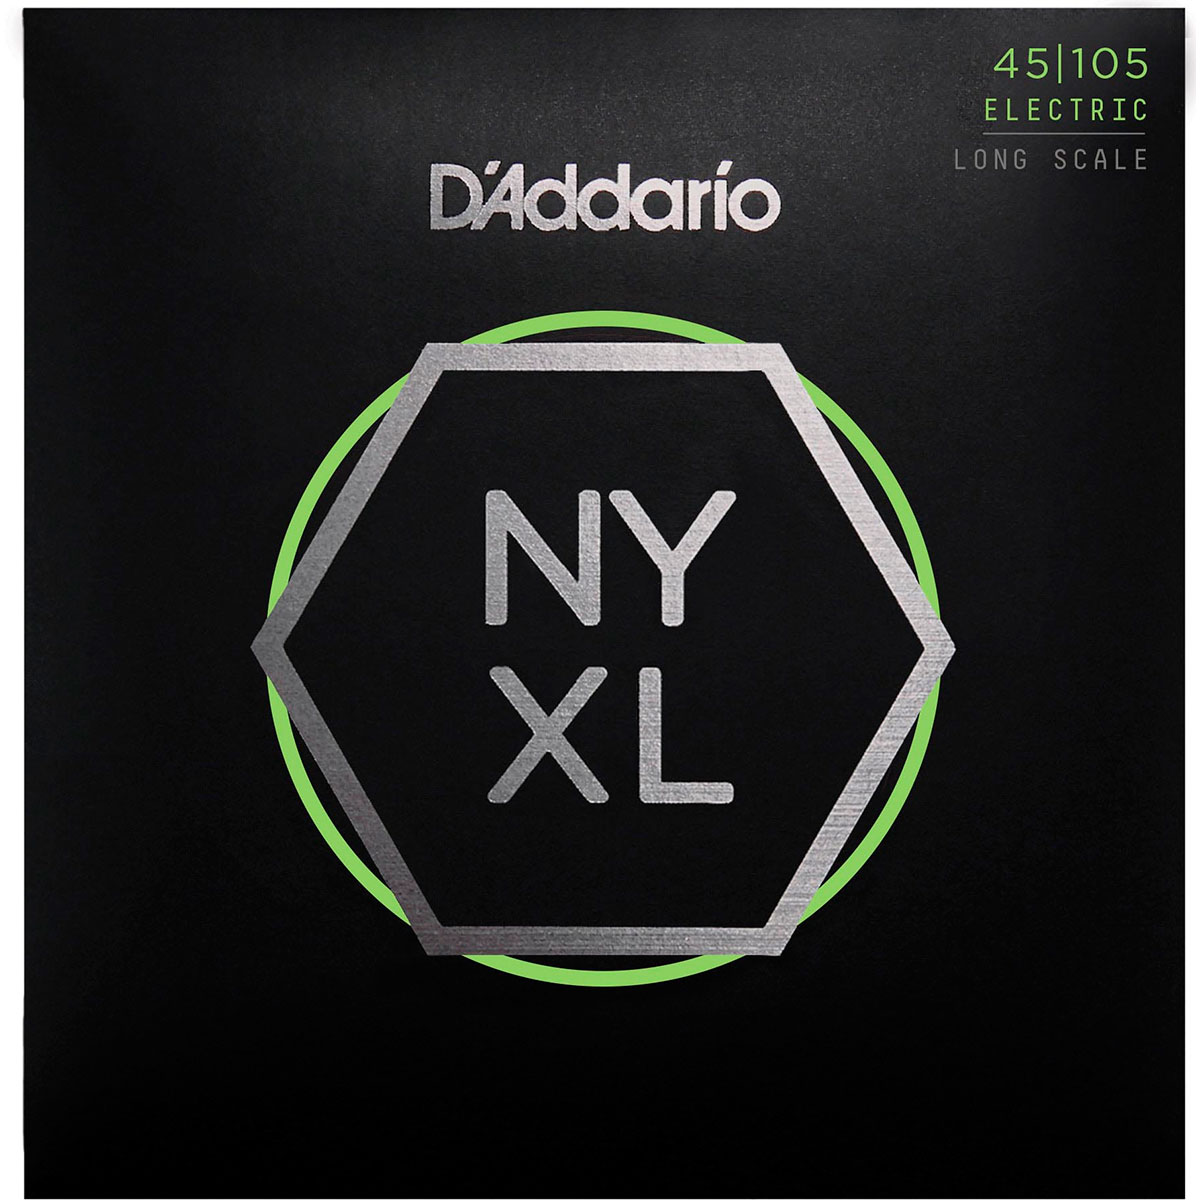 D'Addario NYXL45105 Long Scale